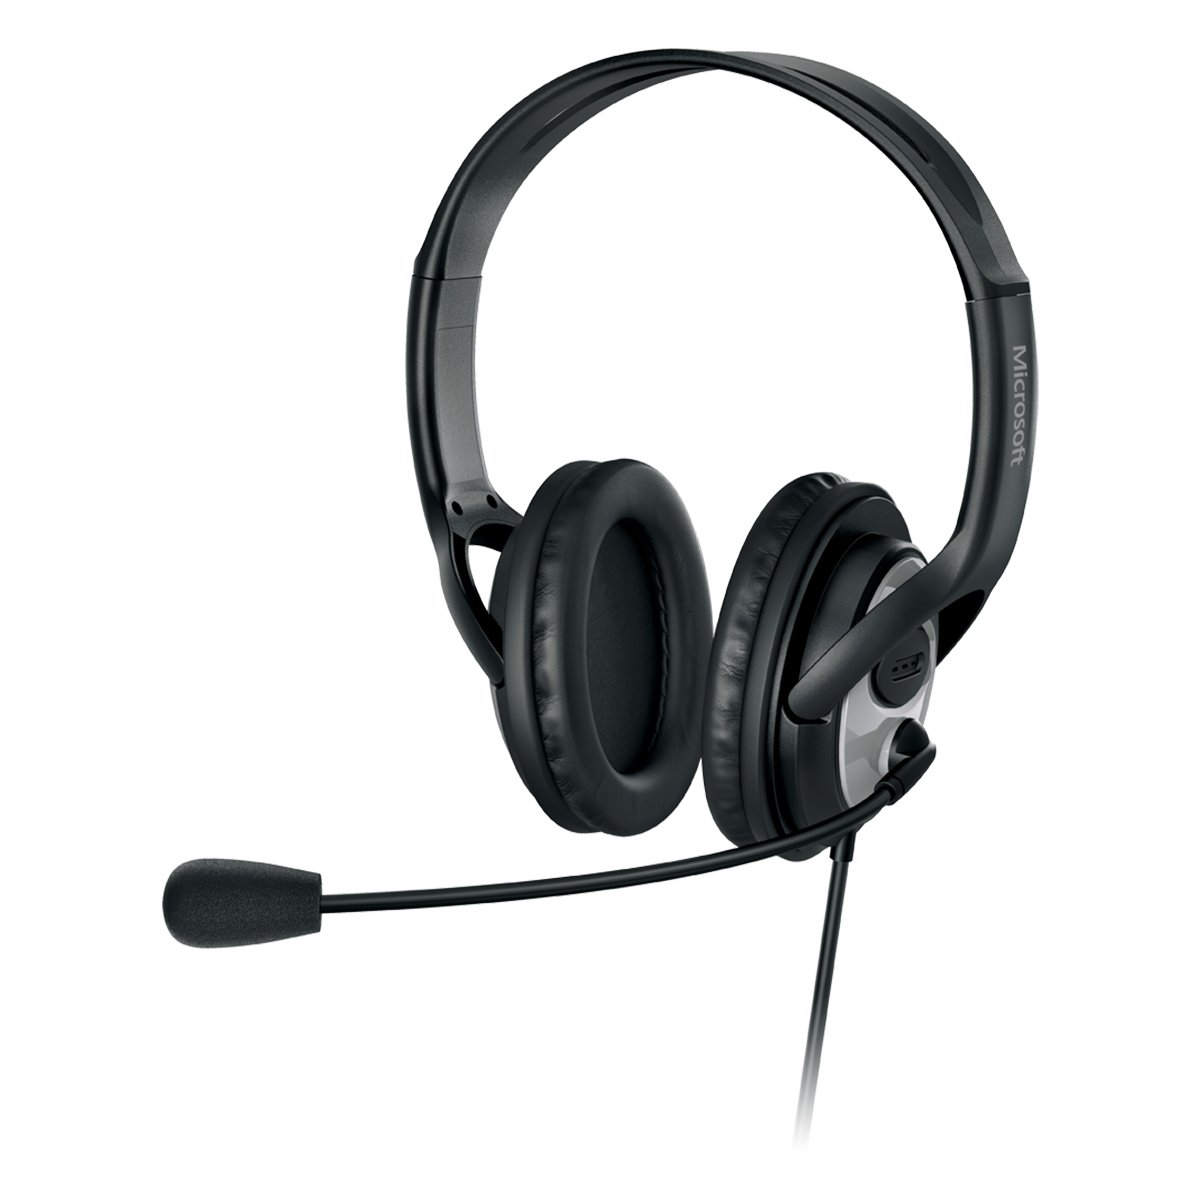 Auriculares Microsoft LifeChat LX-3000 Headset (JUG-00013)